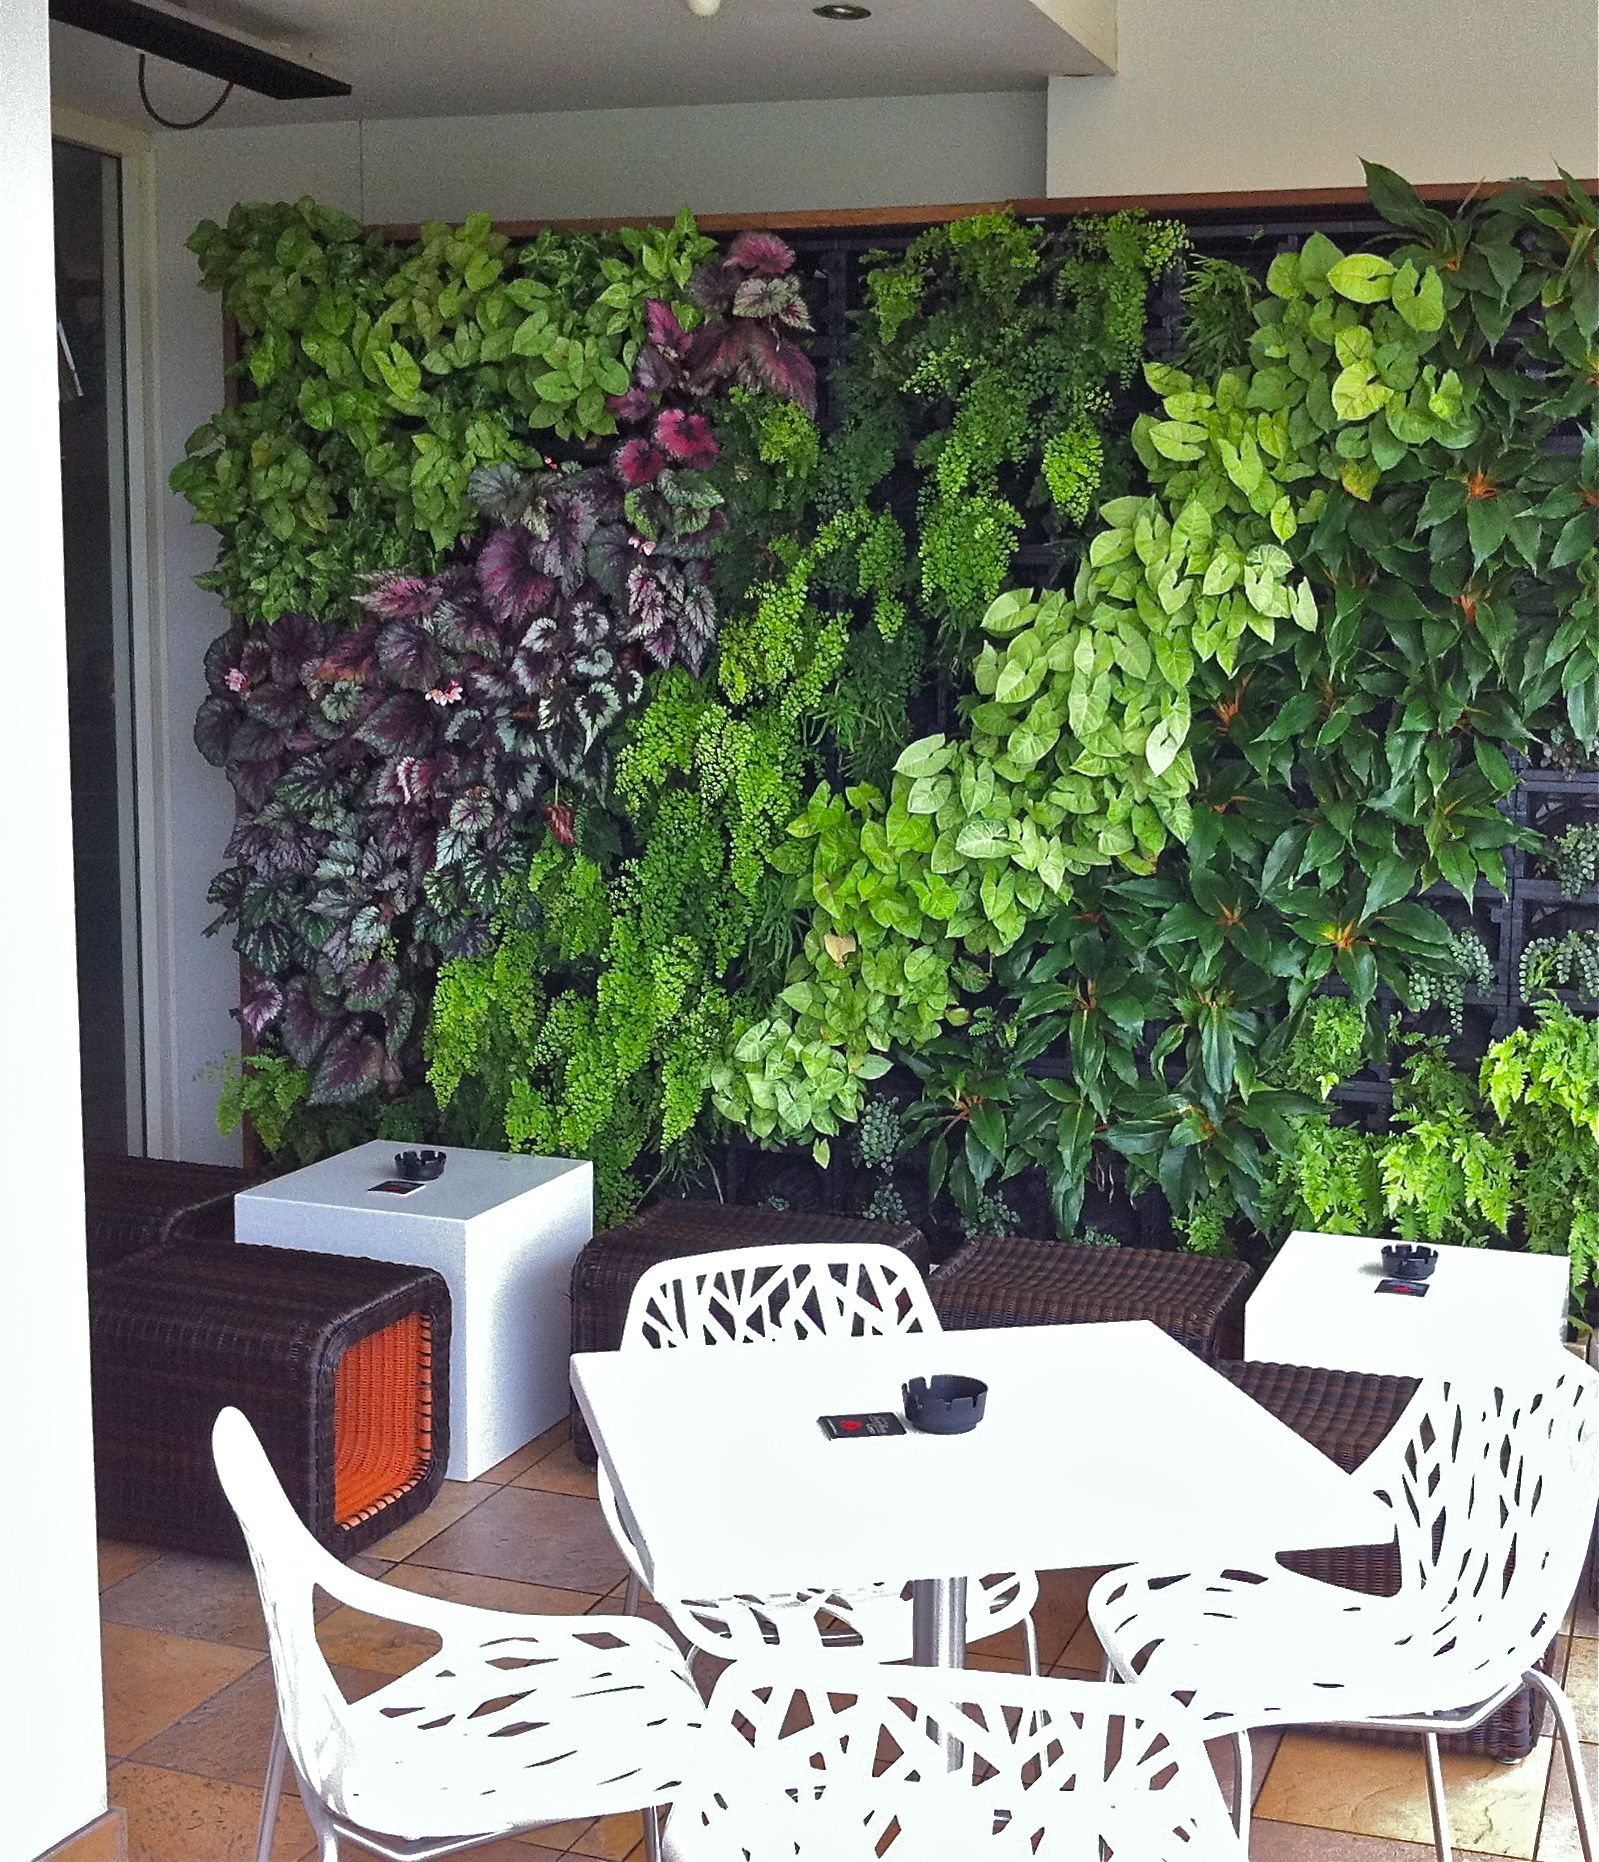 Green wall garden green roof garden vertical garden for Vertical garden designs